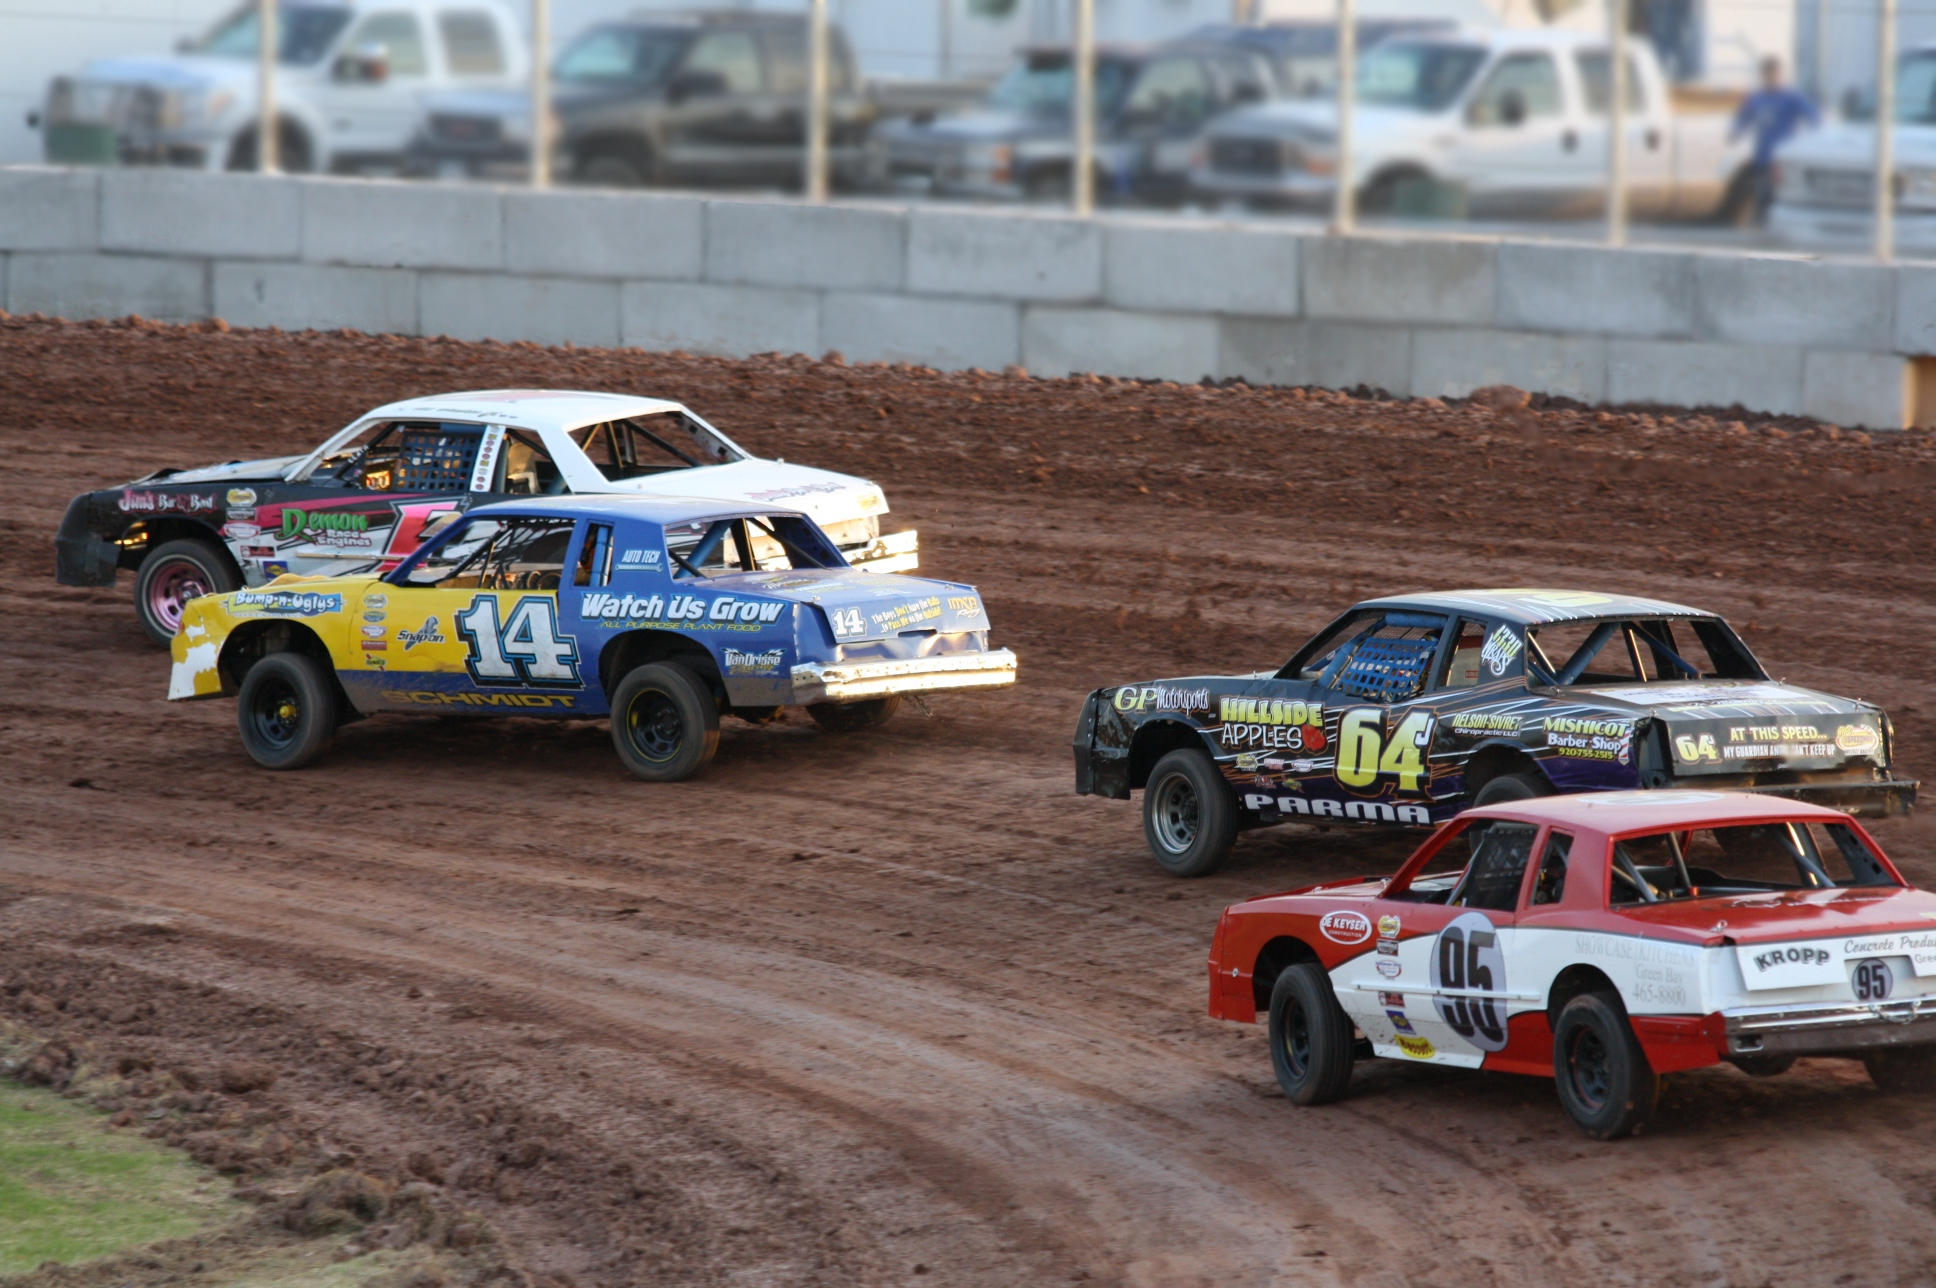 Super Stock Dirt Cars For Sale